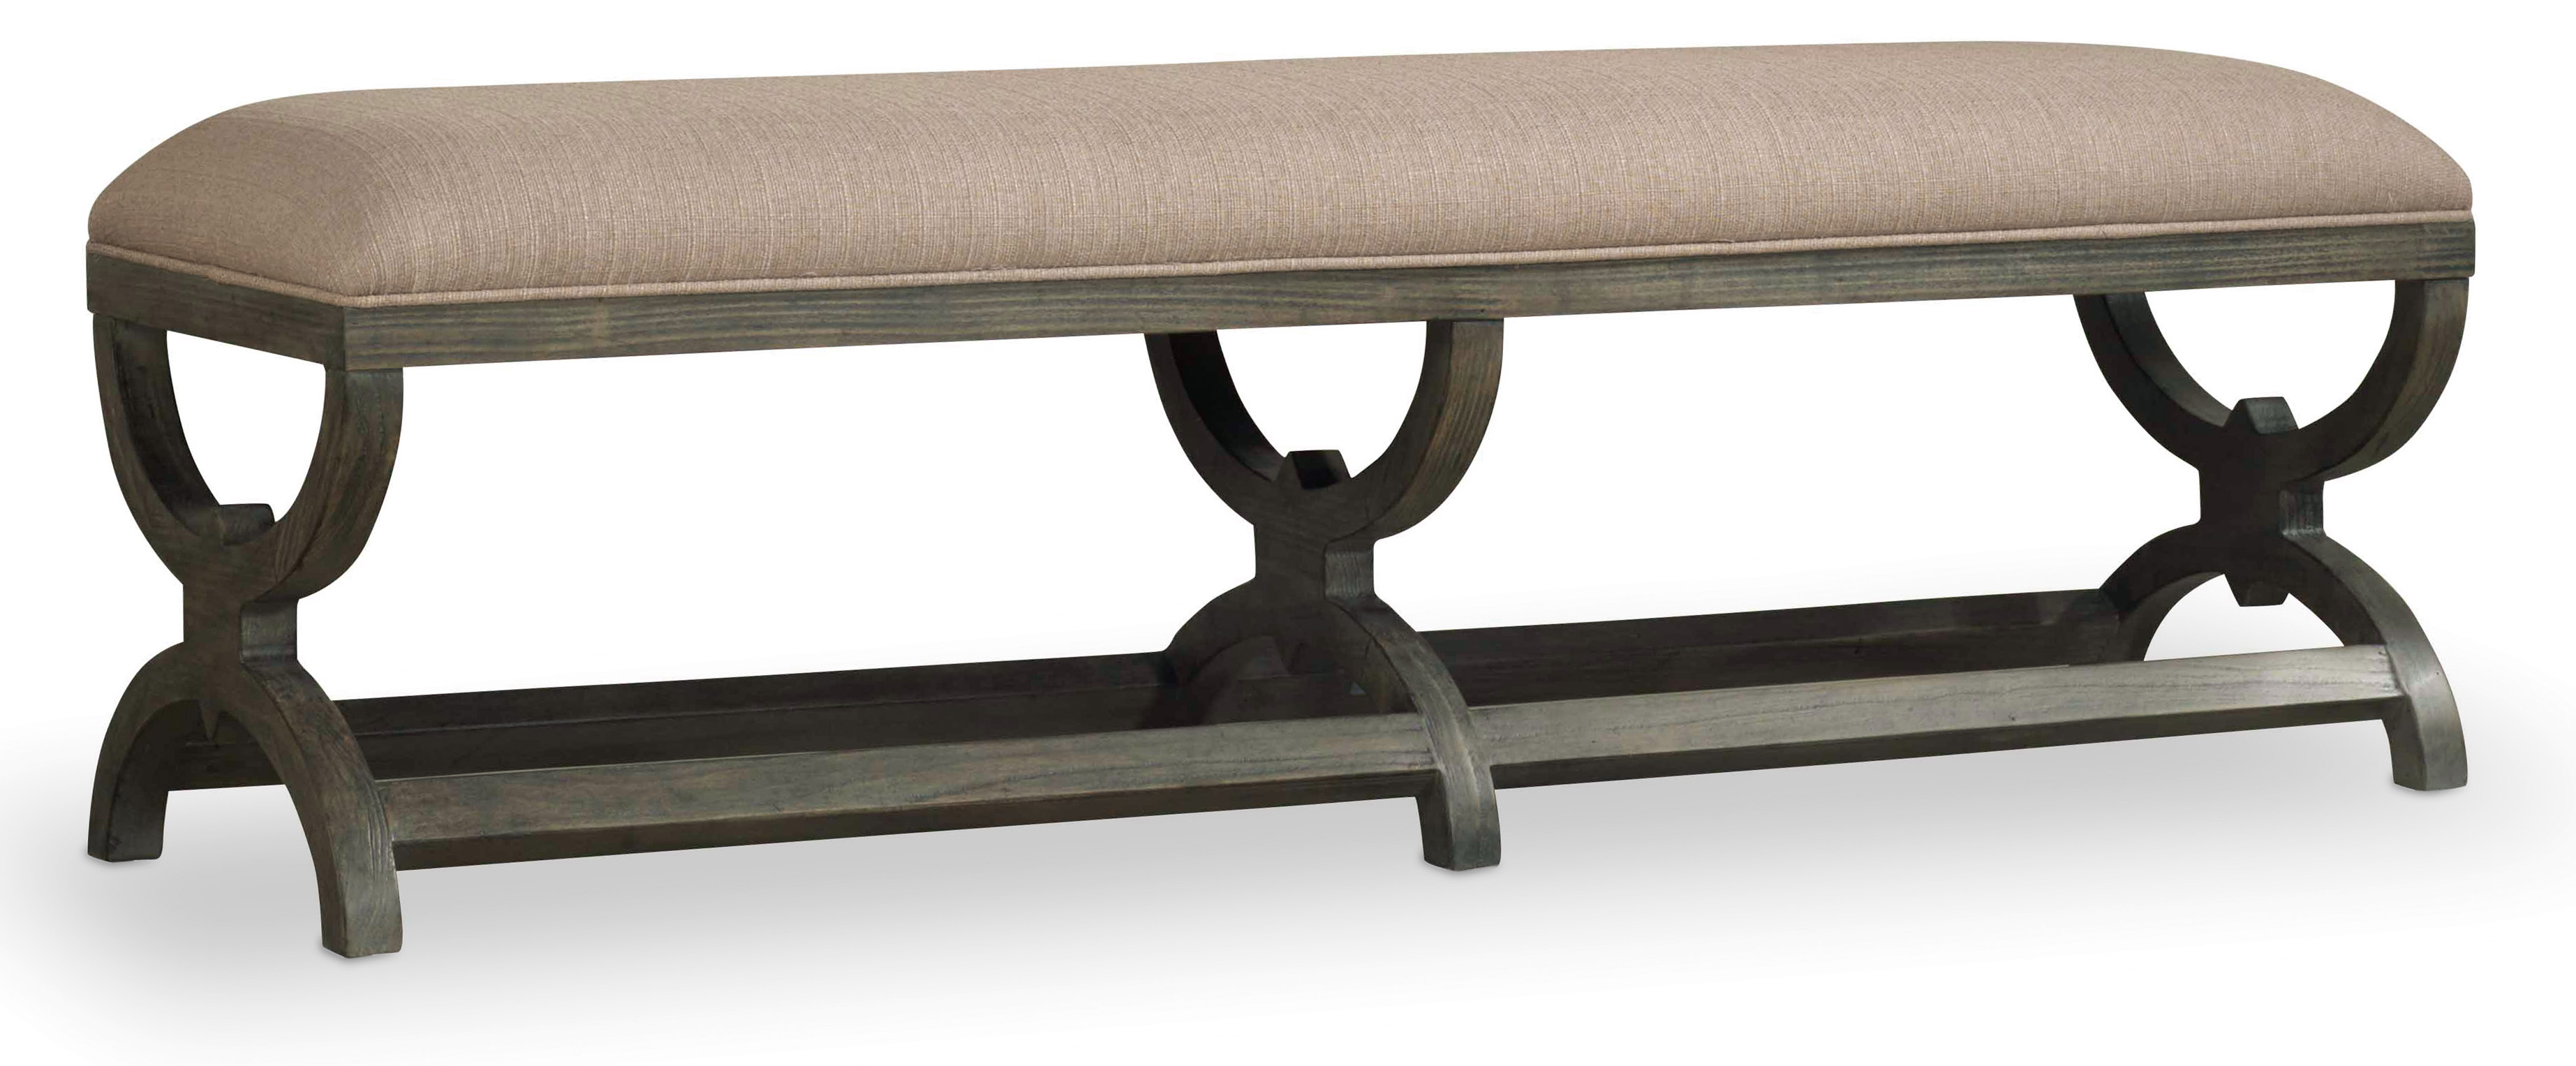 Hooker Furniture Vintage West True Vintage Bench - Item Number: 5702-90019